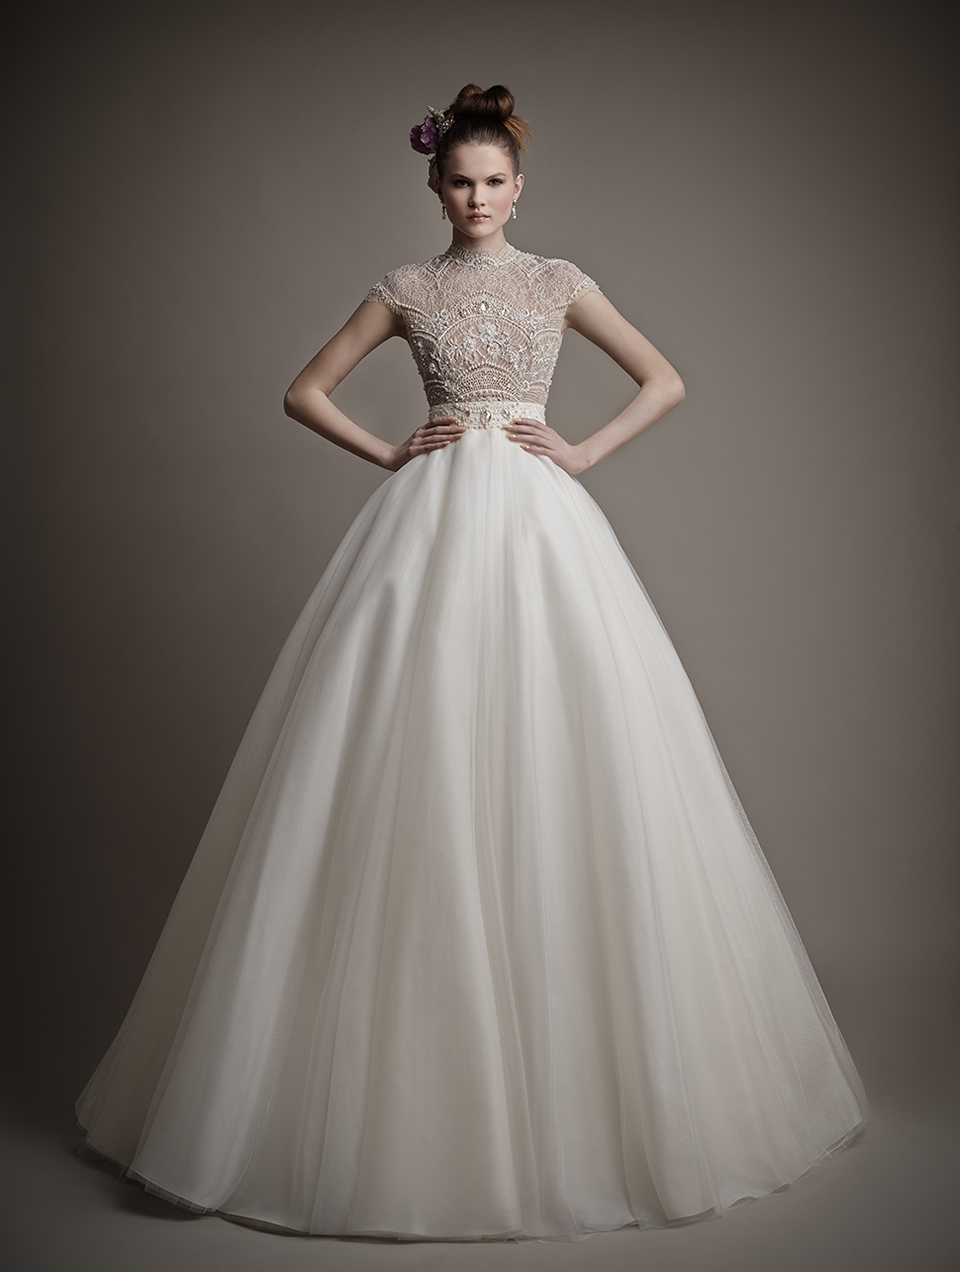 Ersa Atelier Wedding Dresses 2015 - MODwedding